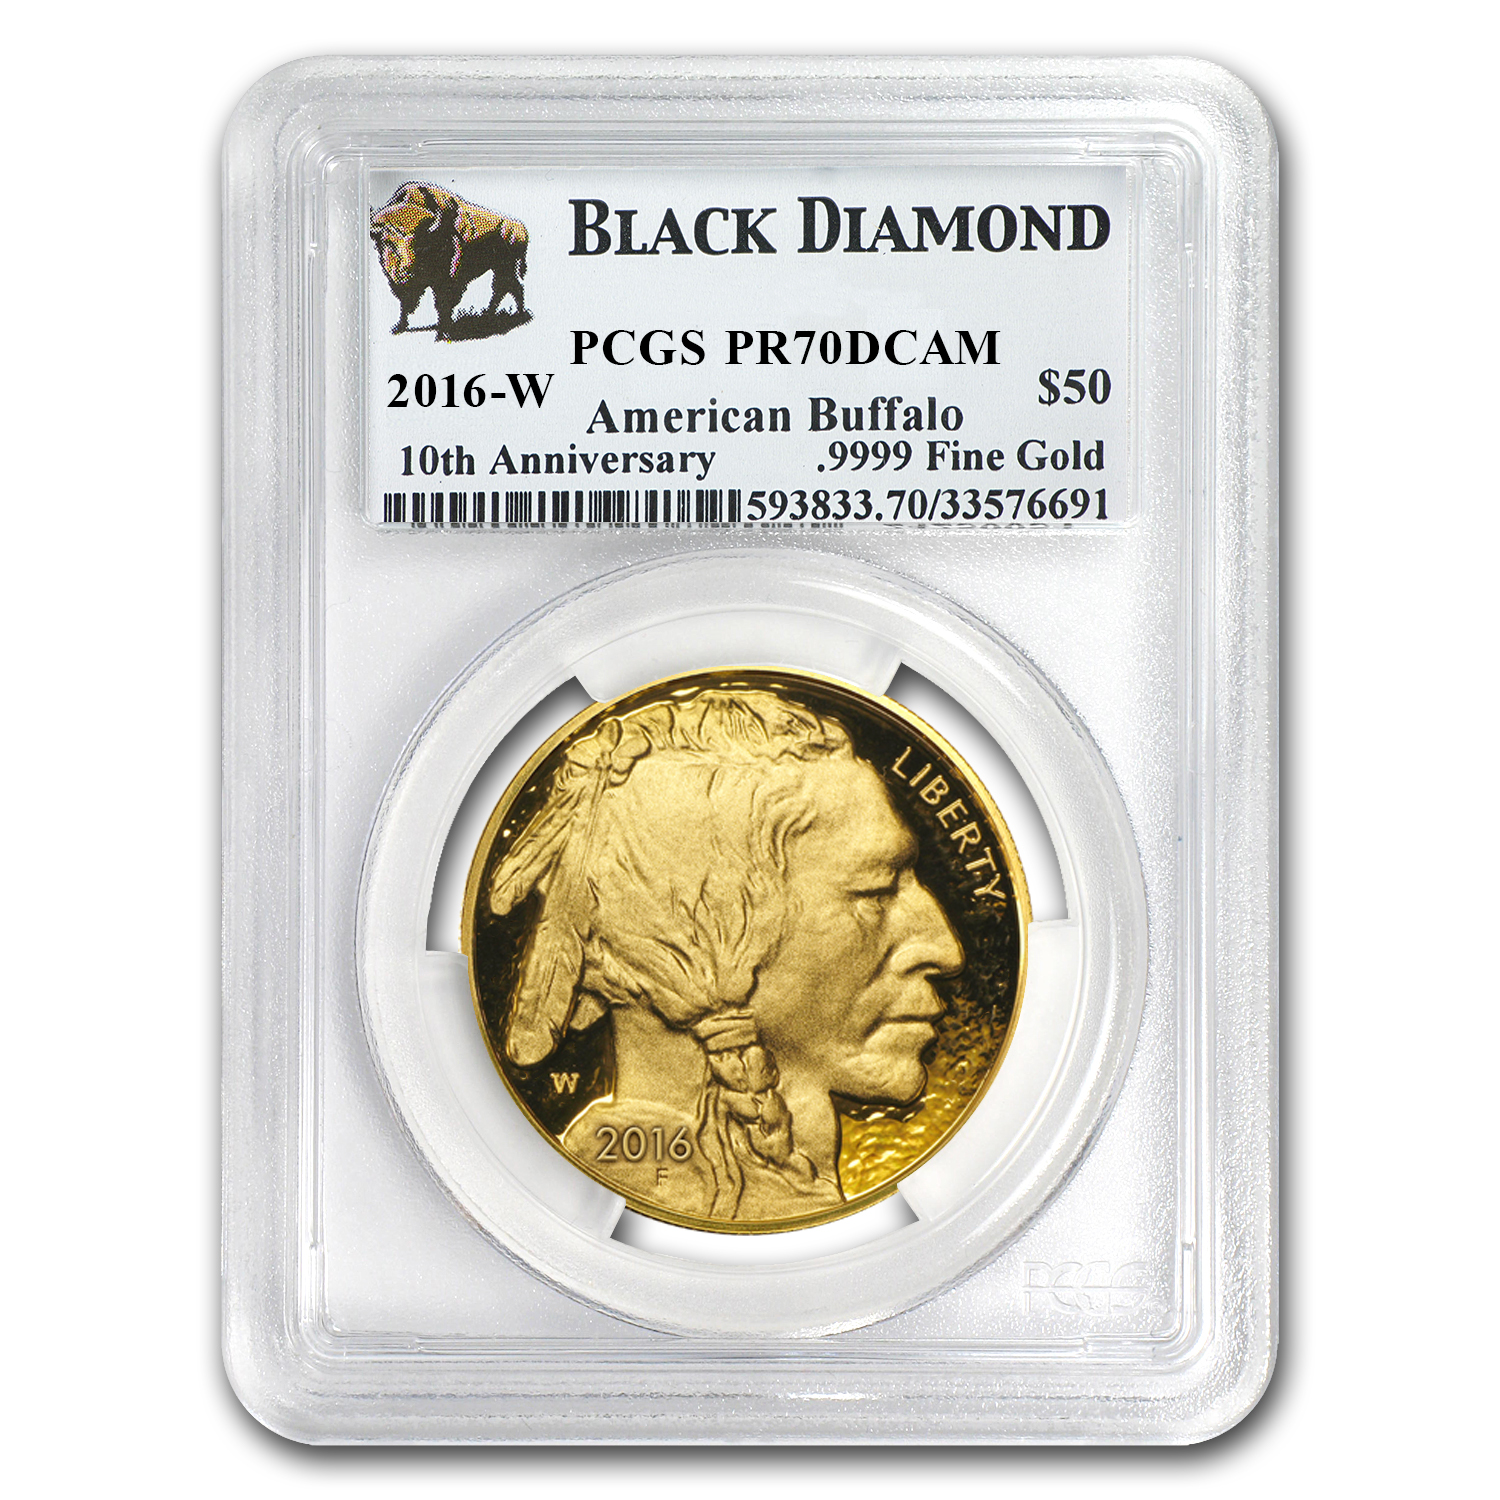 2016-W 1 oz Proof Gold Buffalo PR-70 PCGS (Black Diamond)